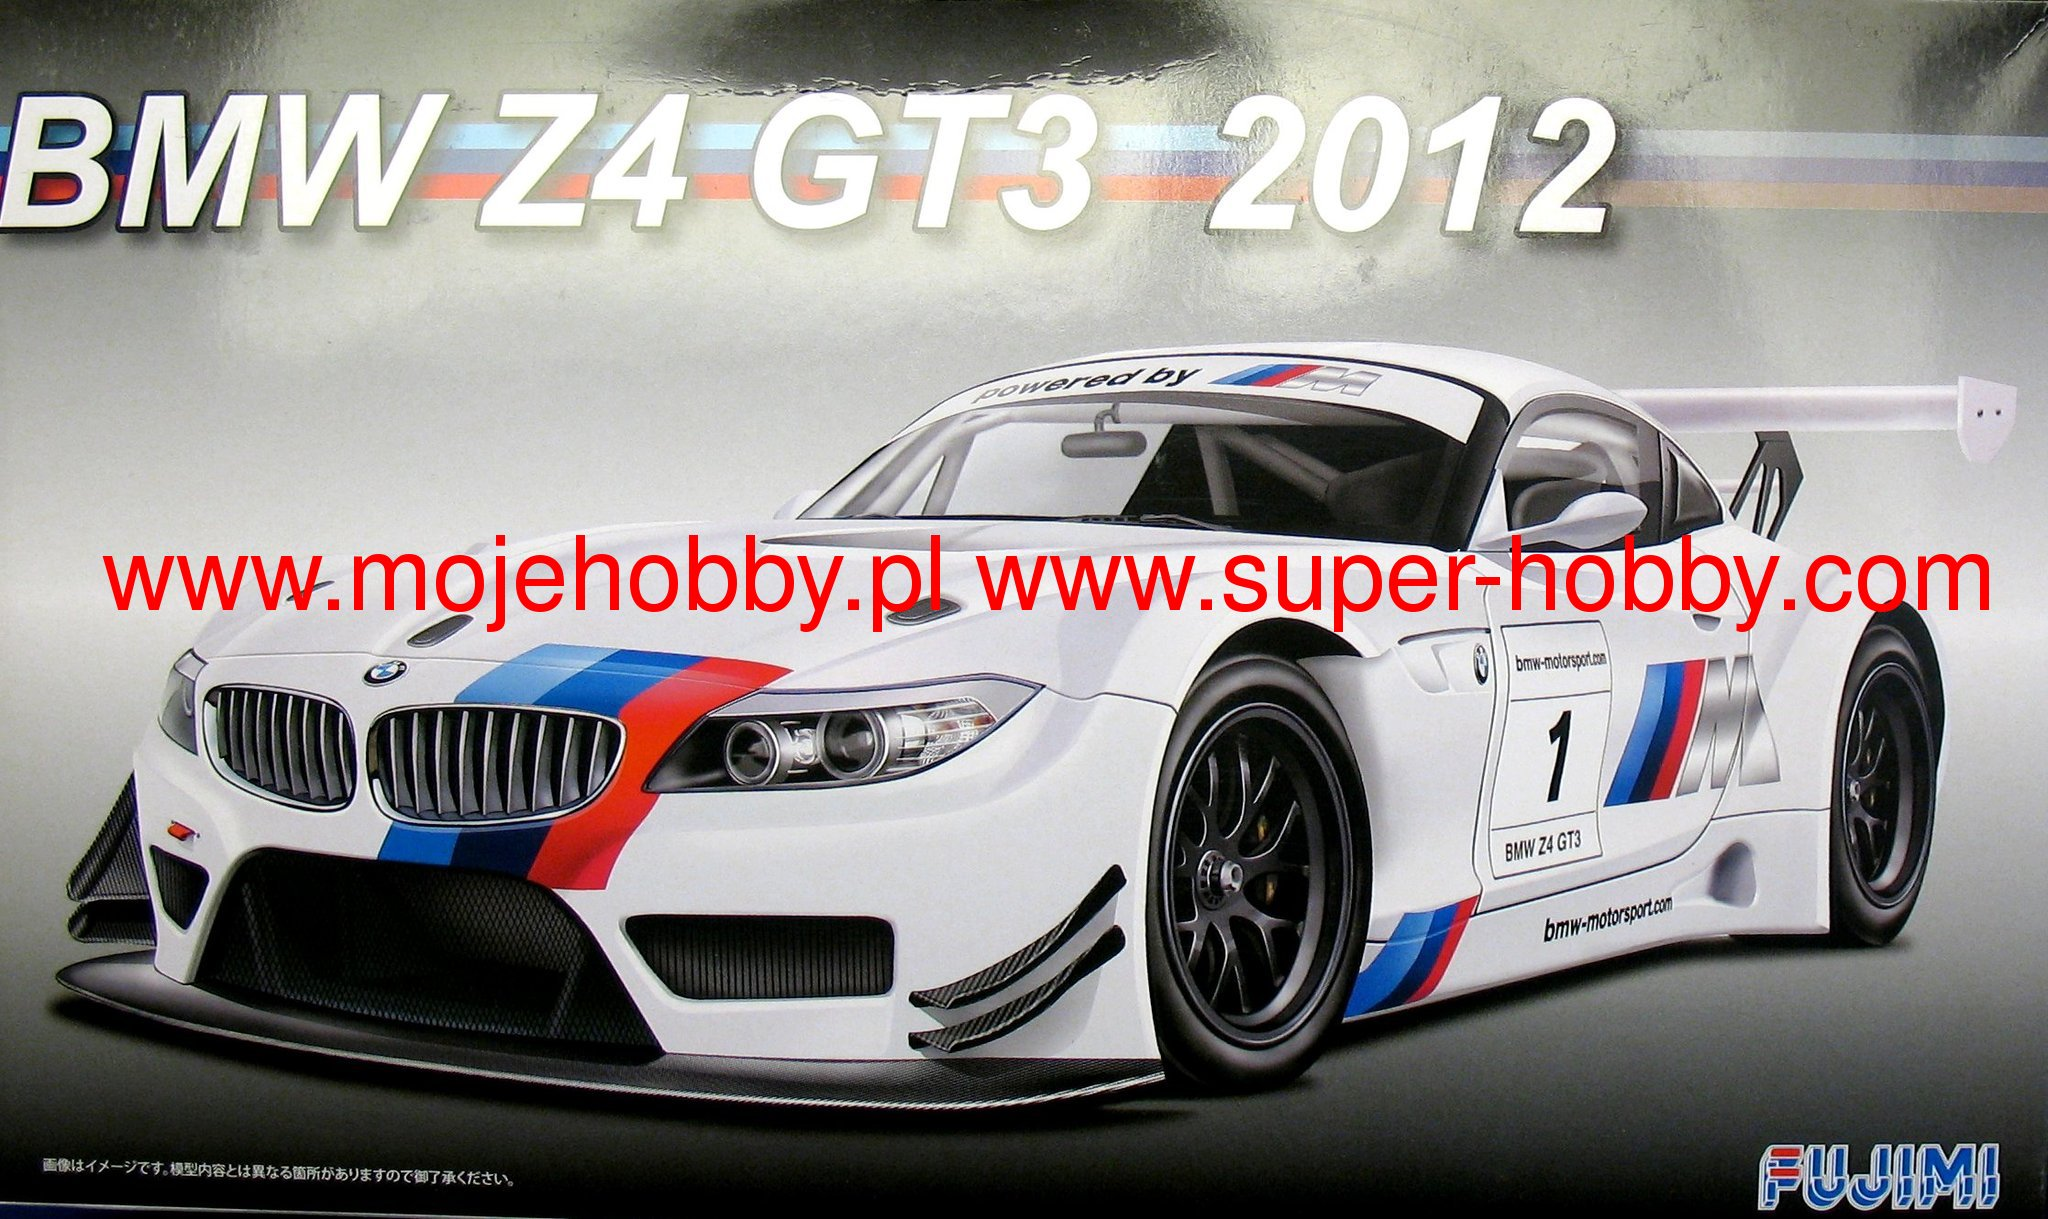 Bmw Z4 Gt3 Price 2010 Bmw Z4 Gt3 E89 Cars Wallpapers And